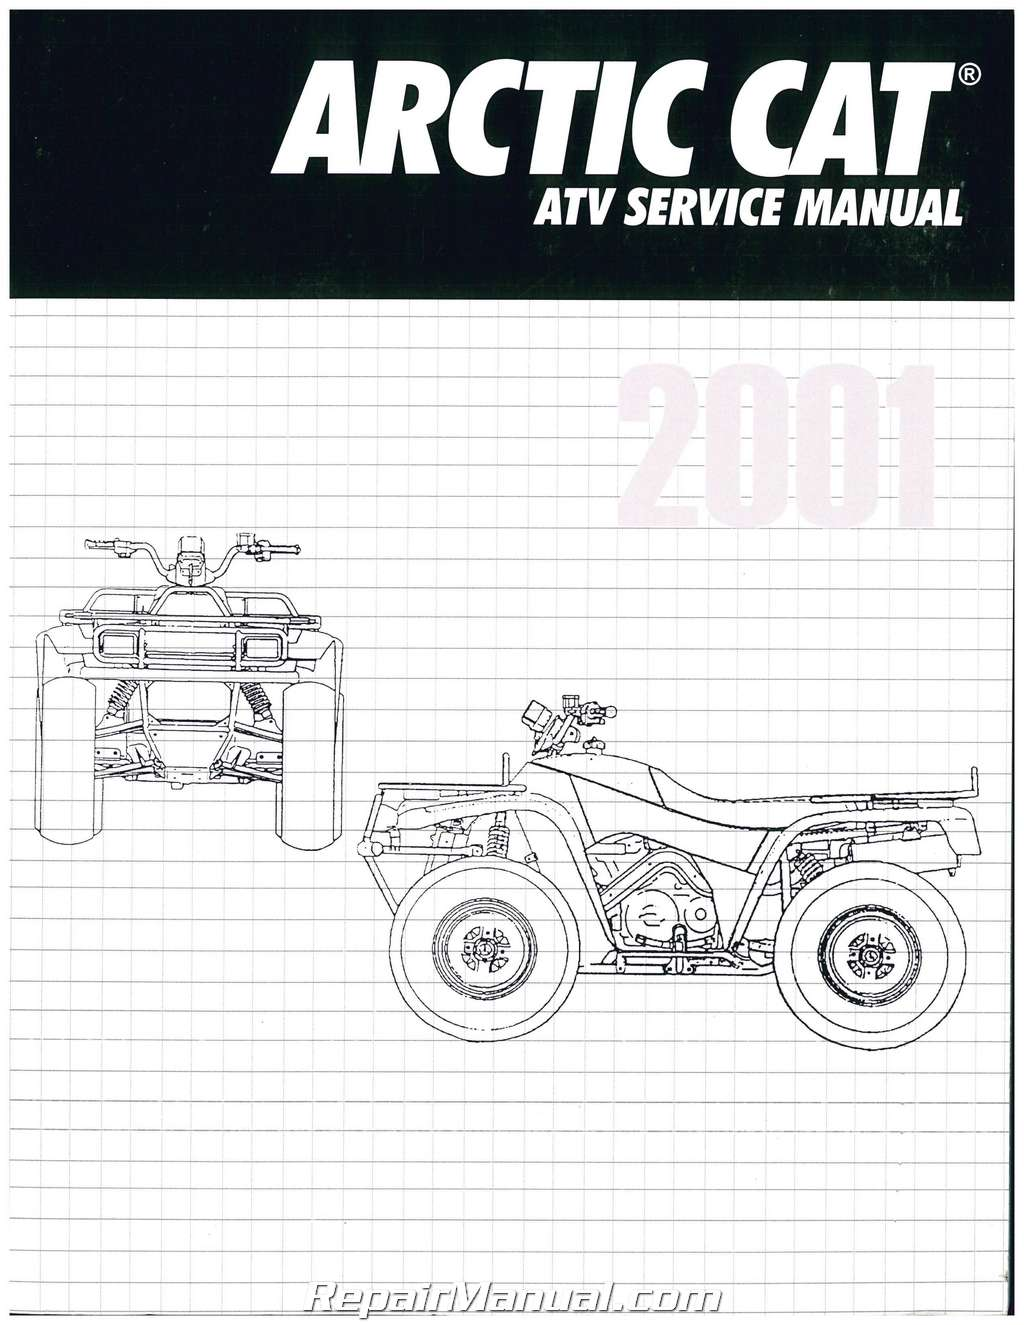 2002 Arctic Cat 500 Repair Manual Various Owner Guide 375 Atv Wiring Diagram 2001 250 300 400 Service Rh Repairmanual Com 2005